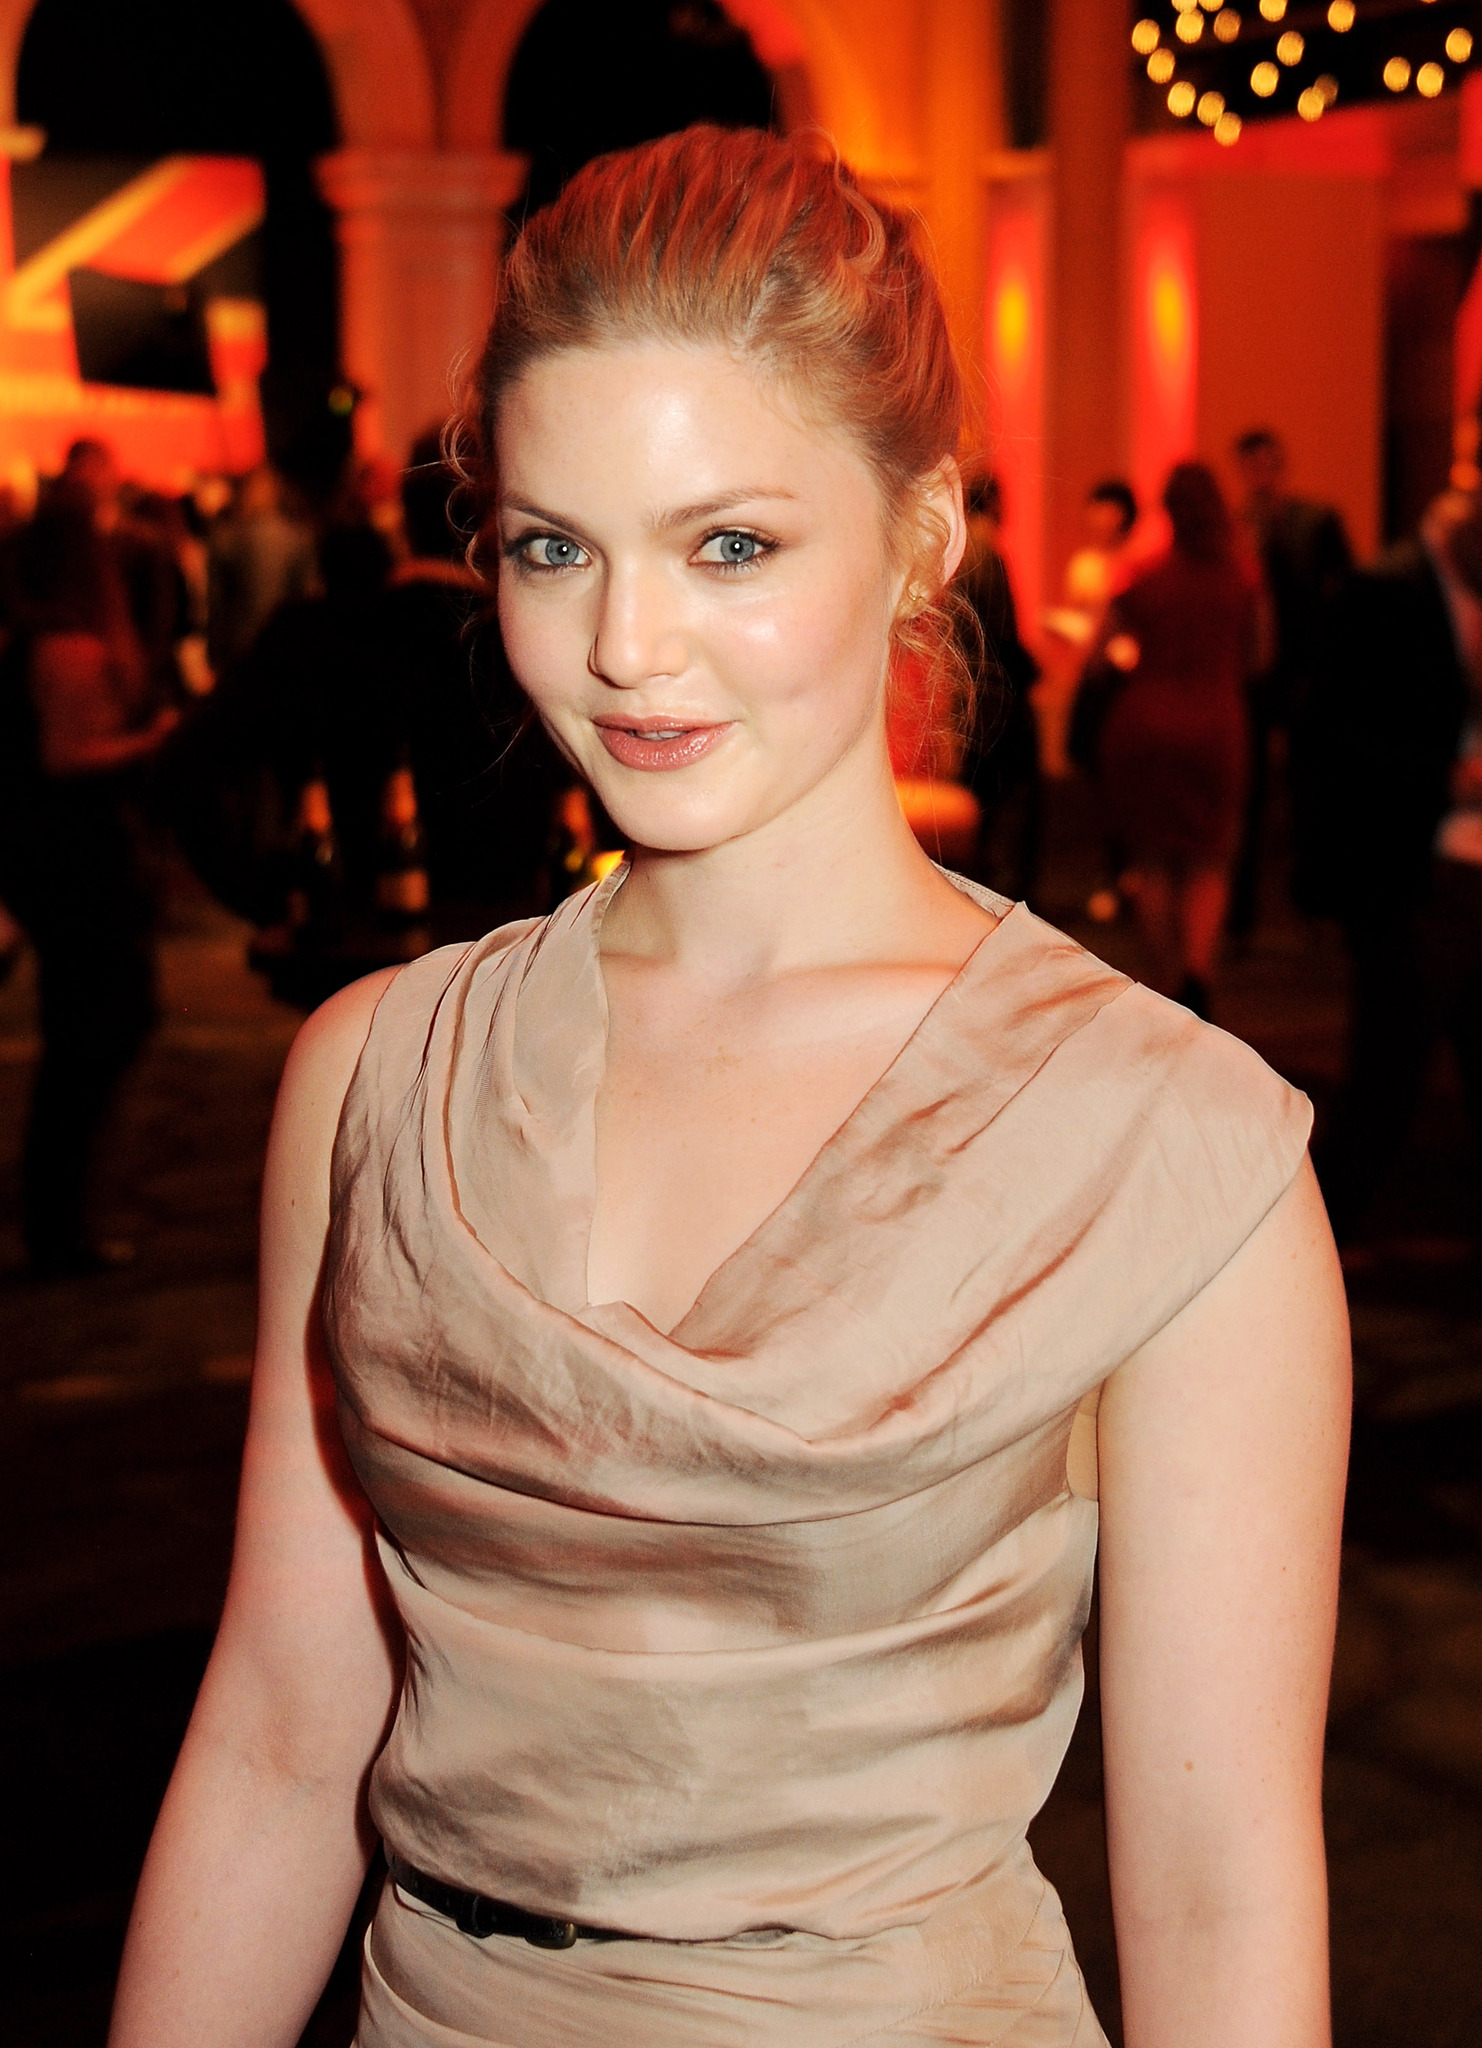 Discussion on this topic: Daisy Marie, holliday-grainger-born-1988/